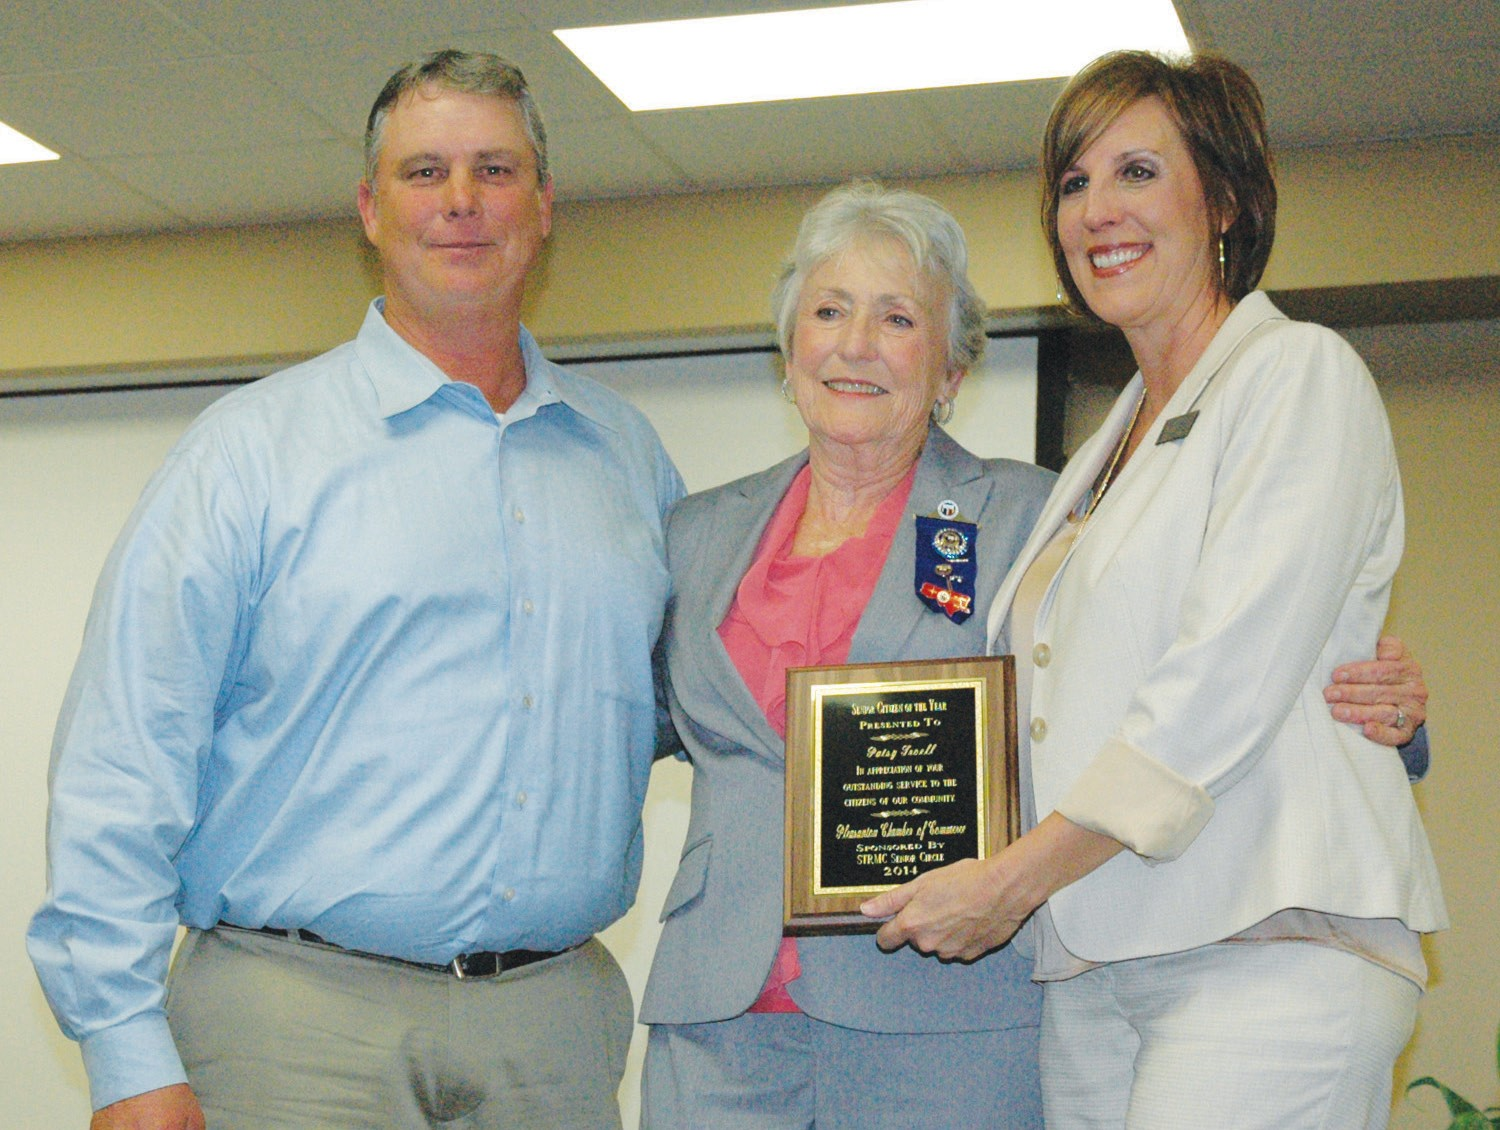 Patsy Troell, center, receives the Senior Citizen of the Year award from Chico Cox, representing the STRMC Senior Circle and his wife Chamber Secretary Pat Cox.